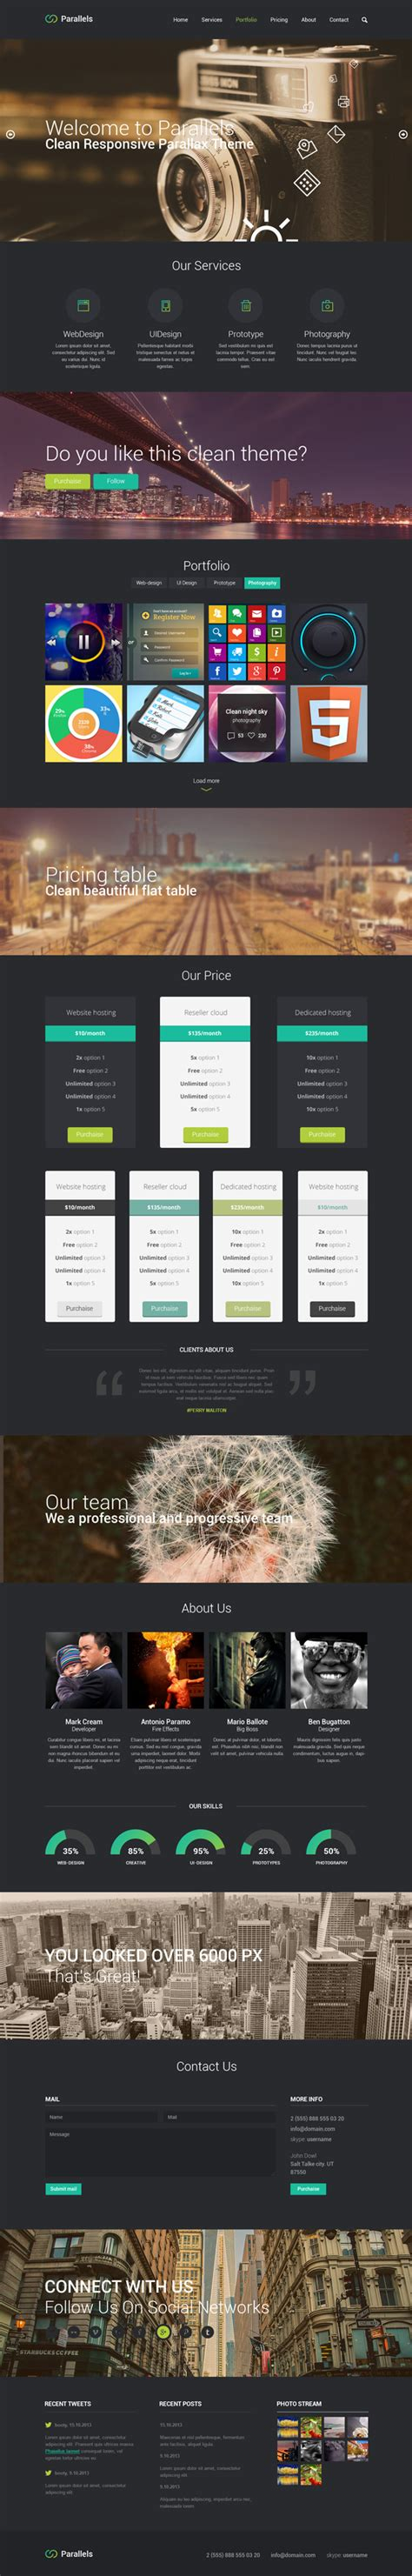 Psd Templates 20 One Page Free Web Templates Freebies Graphic Design Junction Psd Website Templates Free 2017